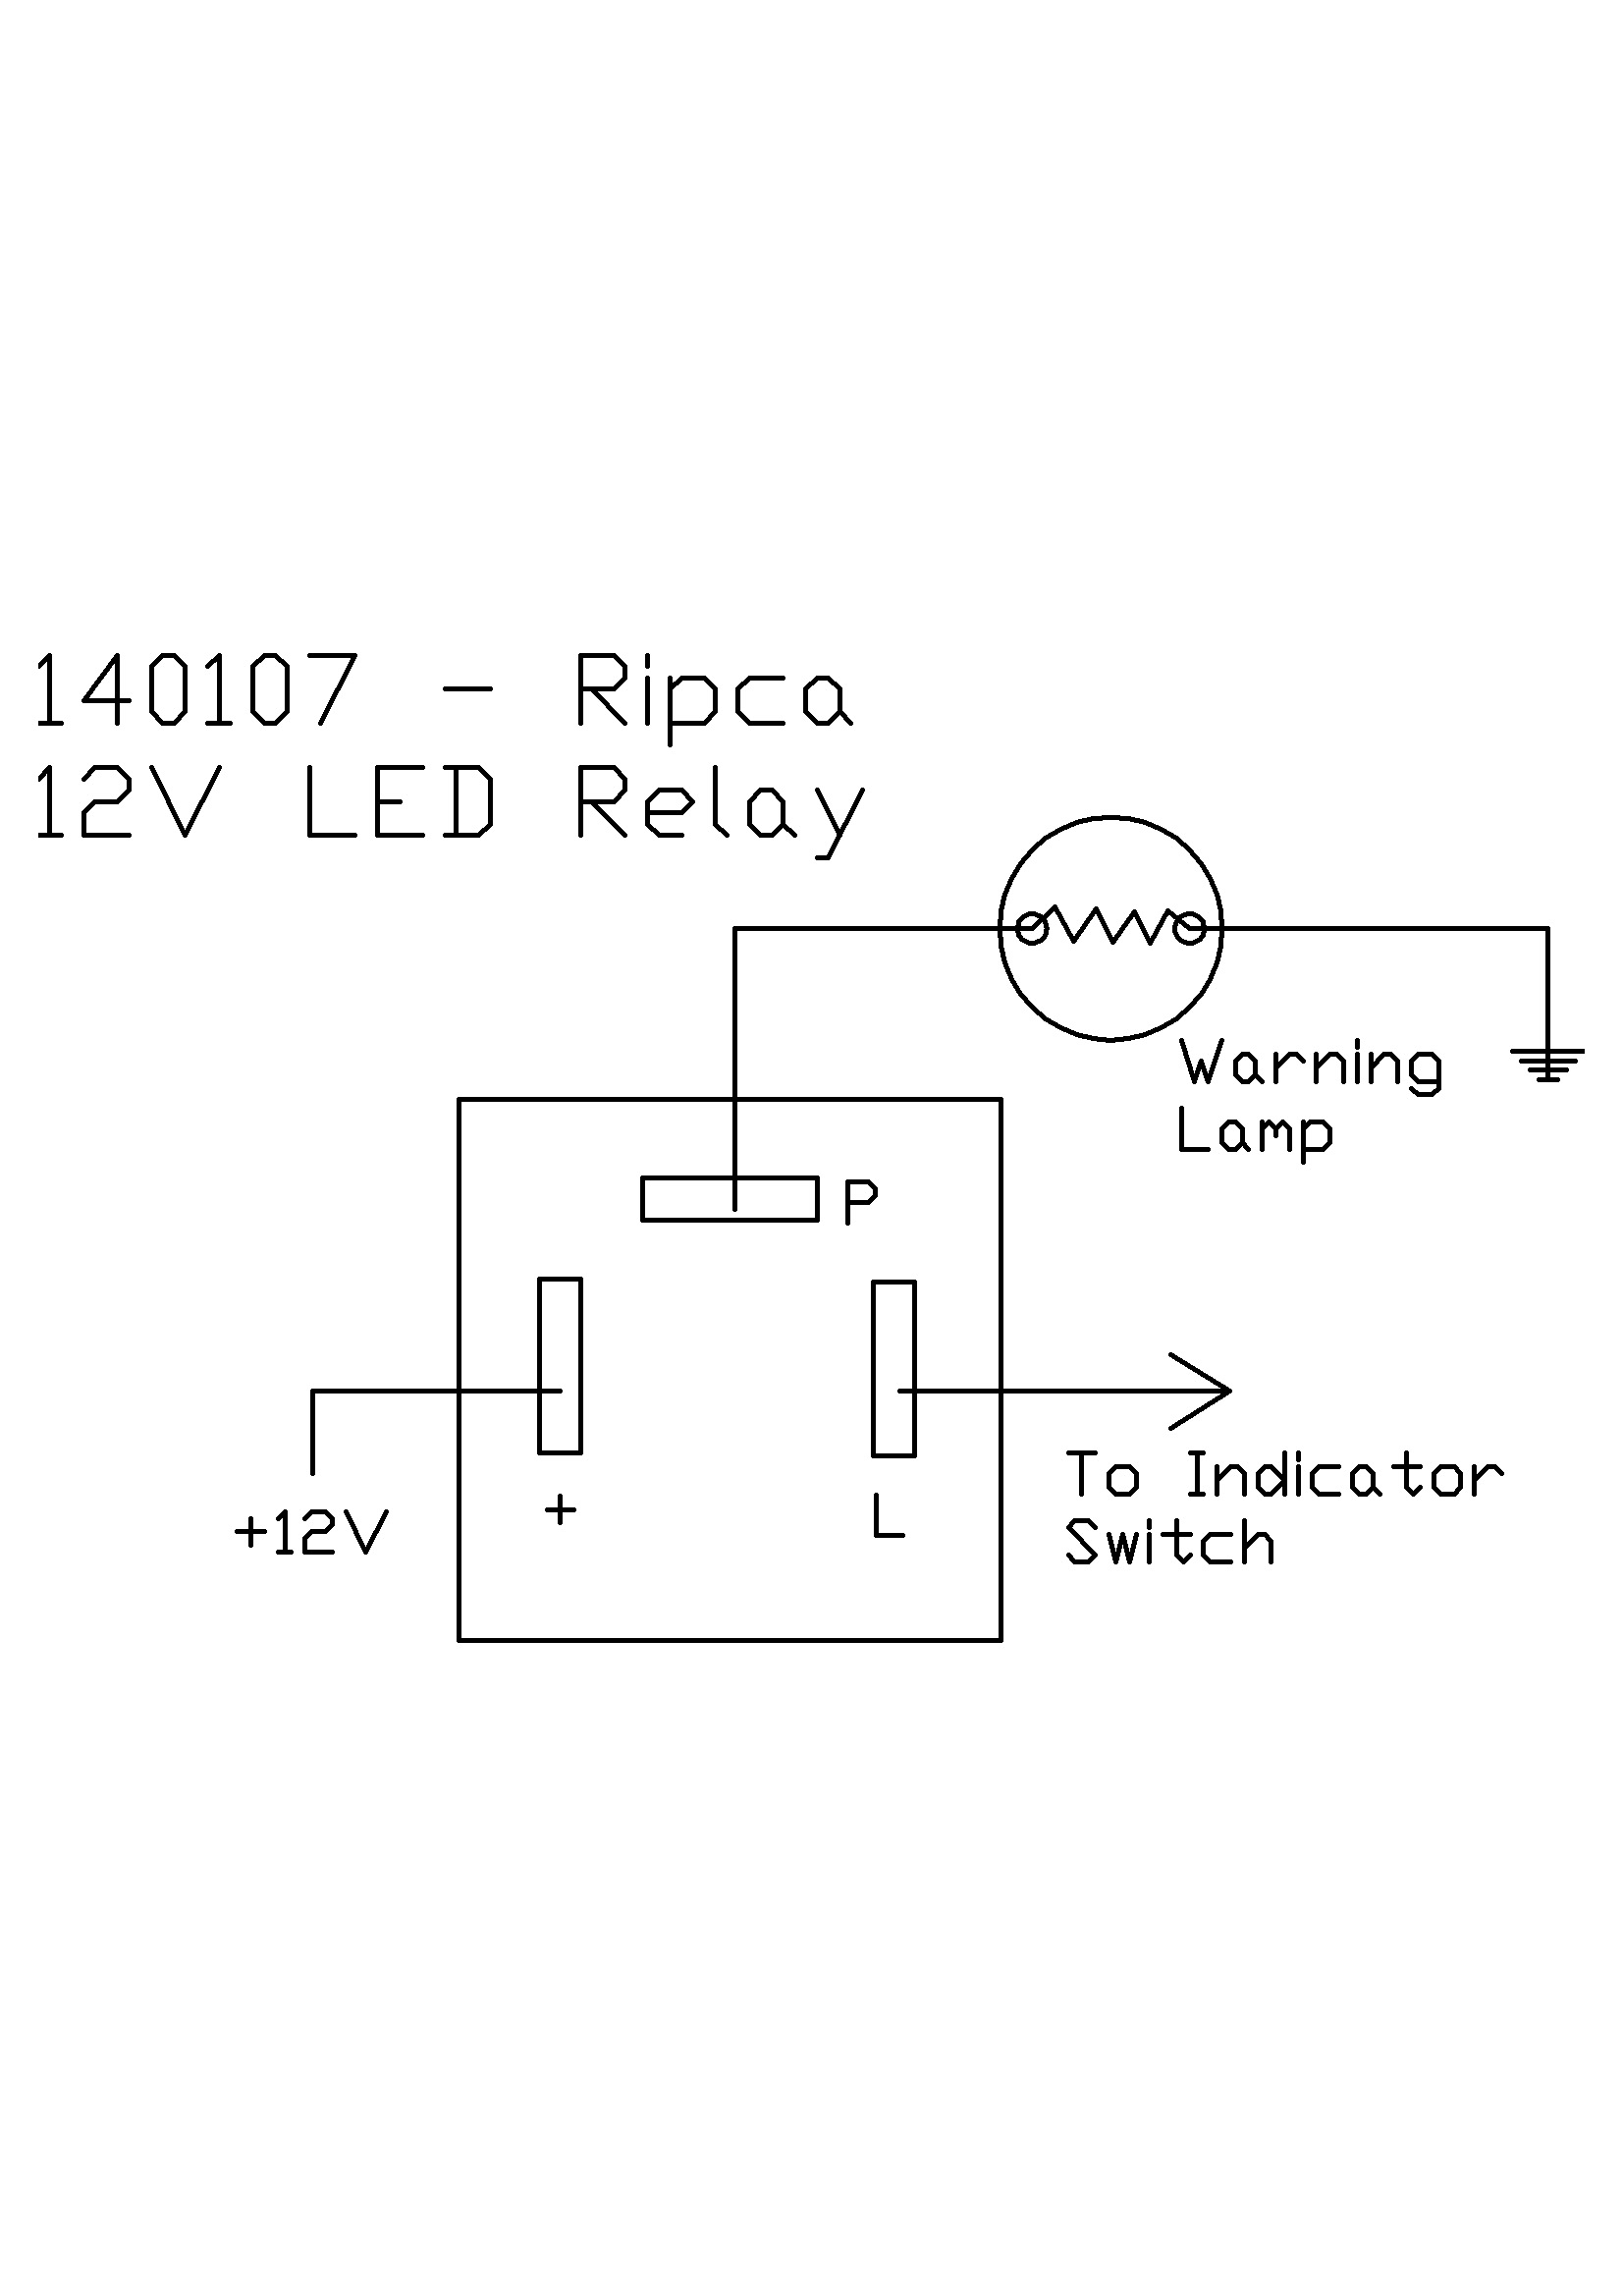 12v Wiring Diagram : Volt led flasher unit